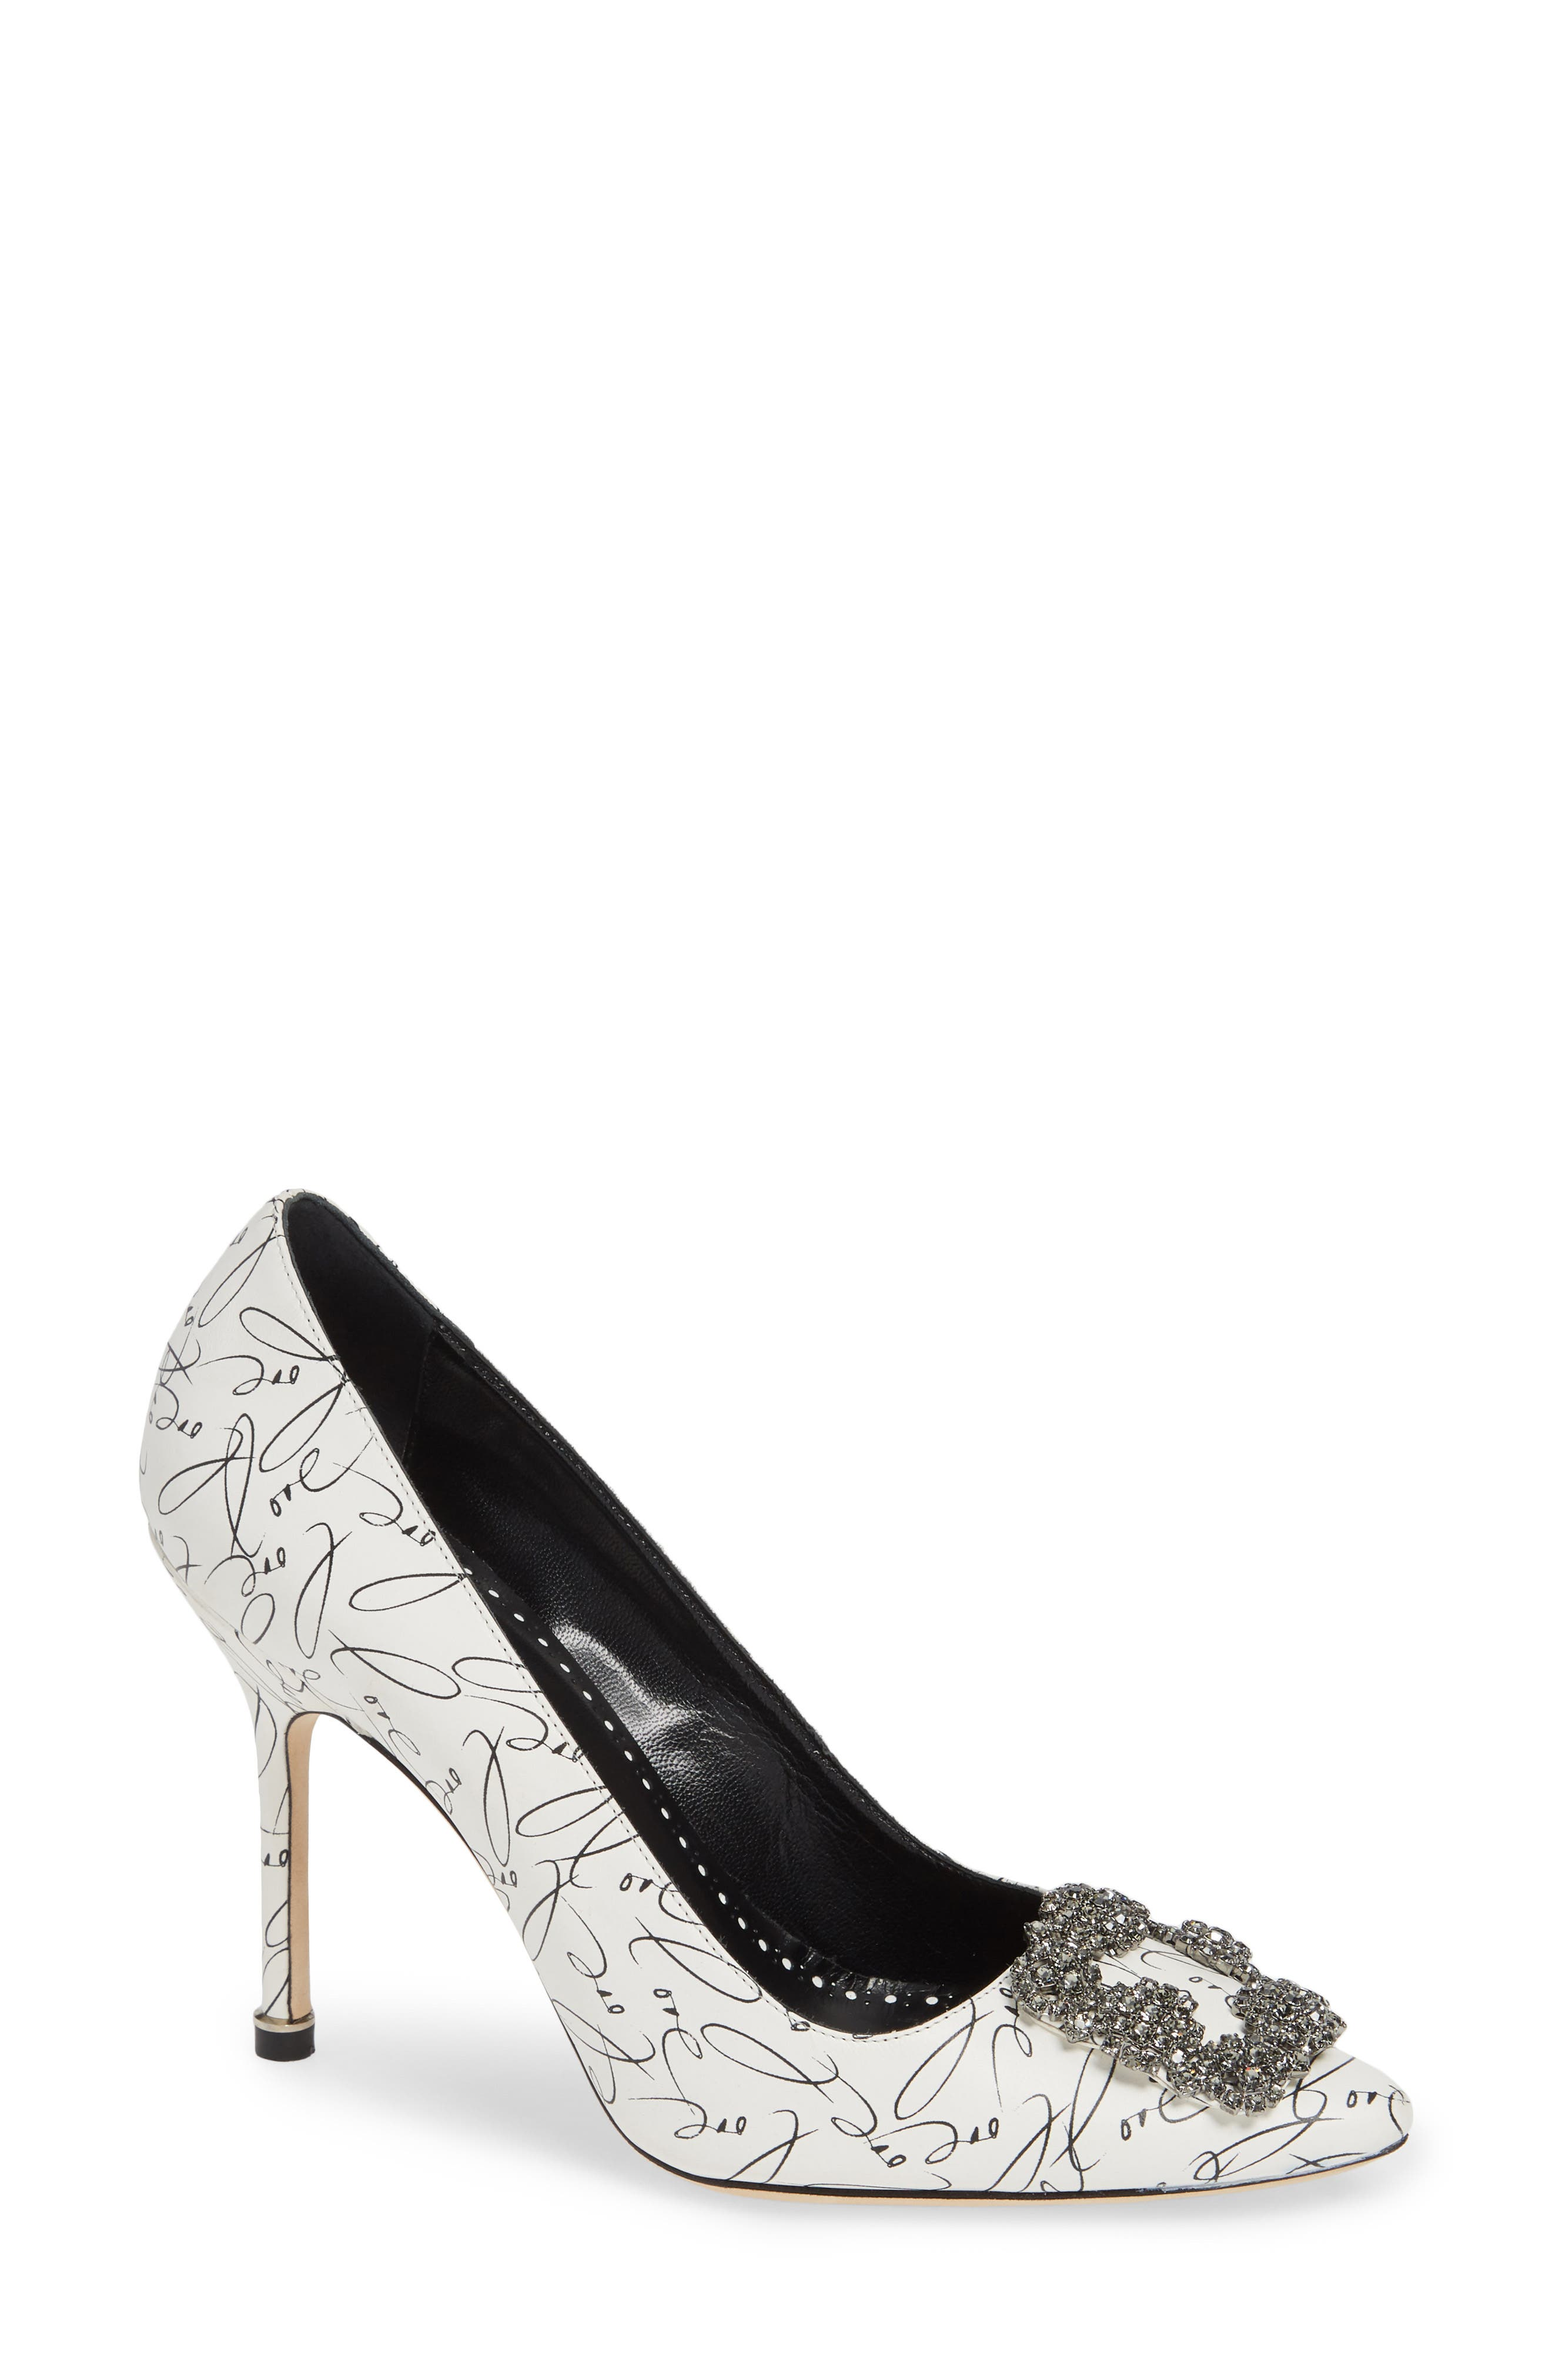 MANOLO BLAHNIK Decade of Love Hangisi Anniversary Embellished Pump, Main, color, WHITE LEATHER